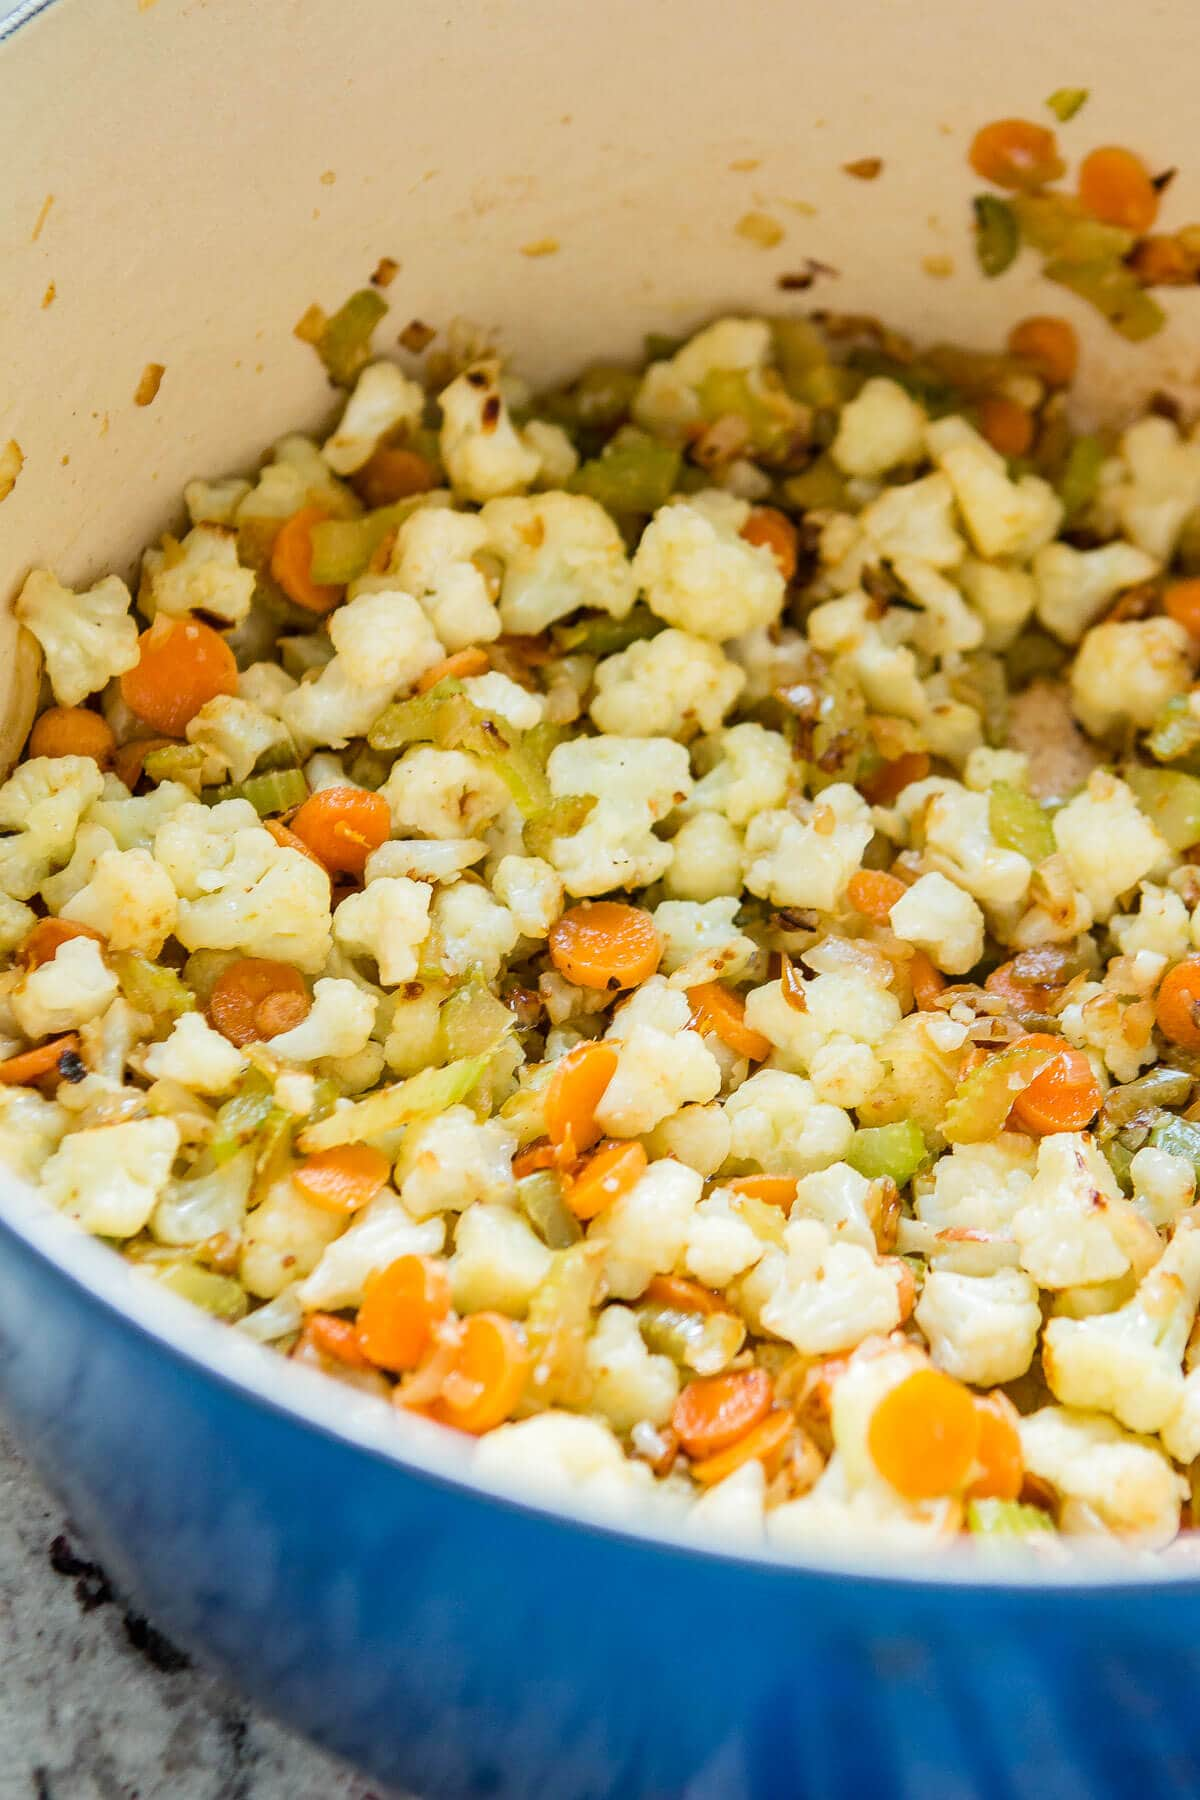 Start out by cooking the carrots, onion, celery and cauliflower until tender. Make sure you don't add the garlic until the very end to avoid burning. ohsweetbasil.com